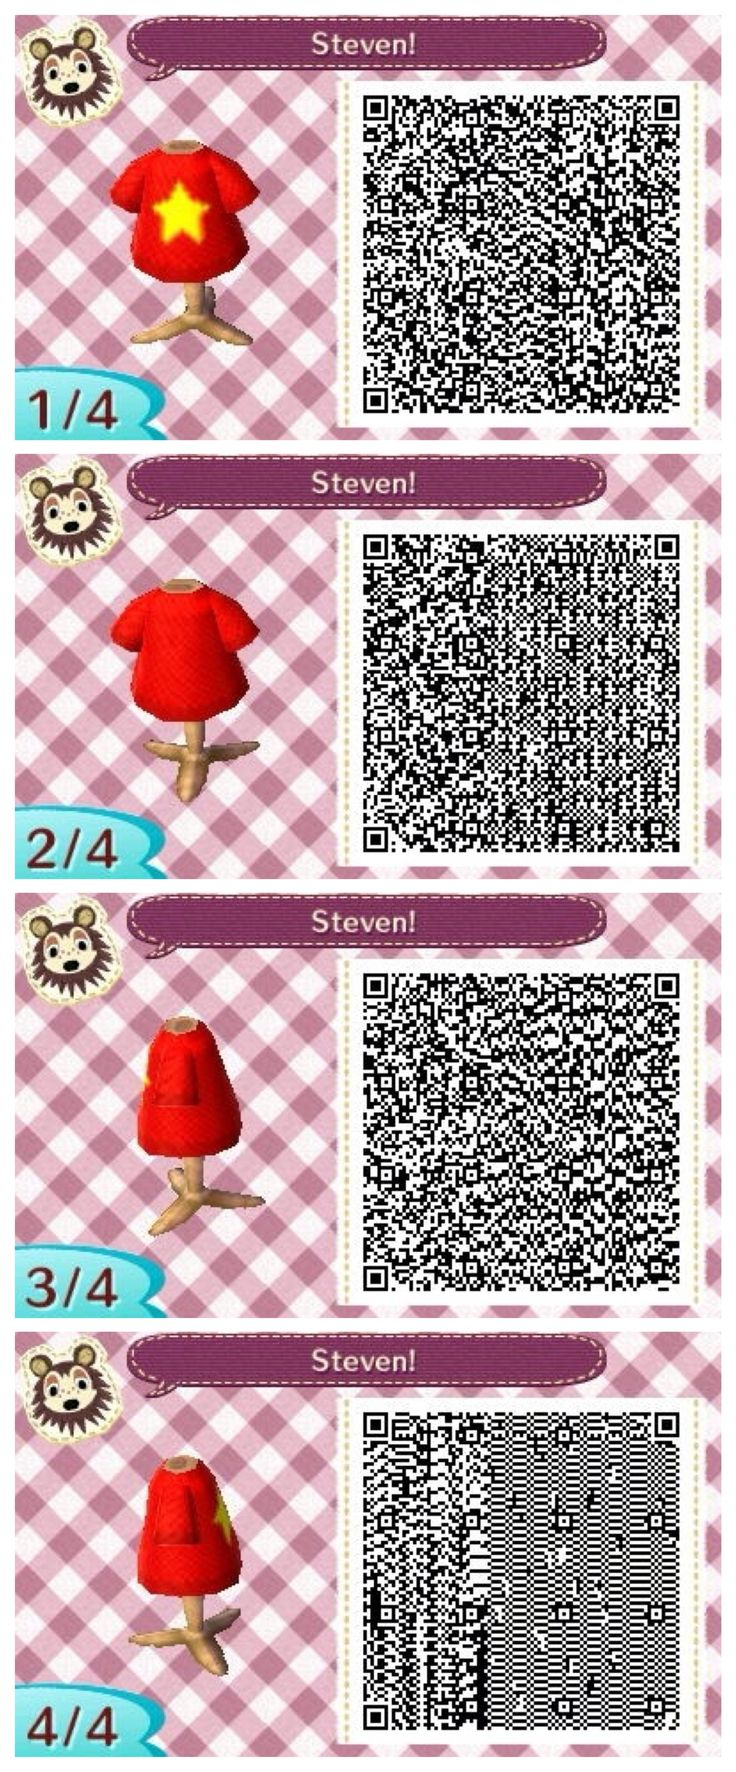 Les 408 meilleures images du tableau qr codes sur for Carrelage kitsch animal crossing new leaf